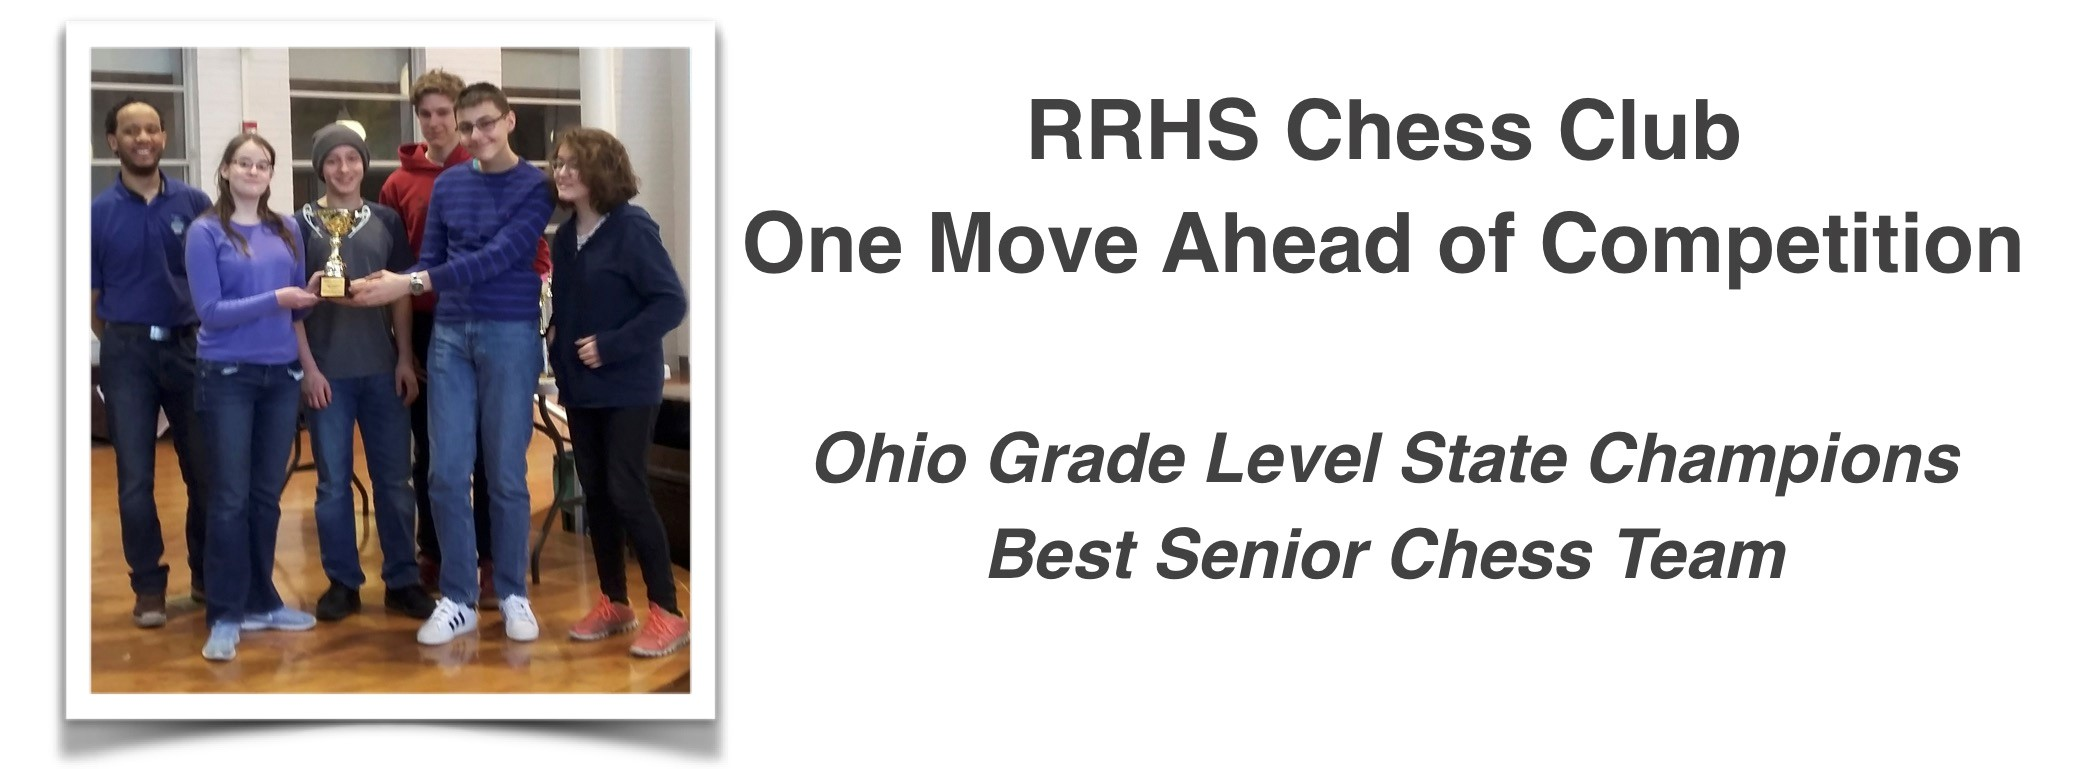 RRHS Chess Club One Move Ahead of Competition